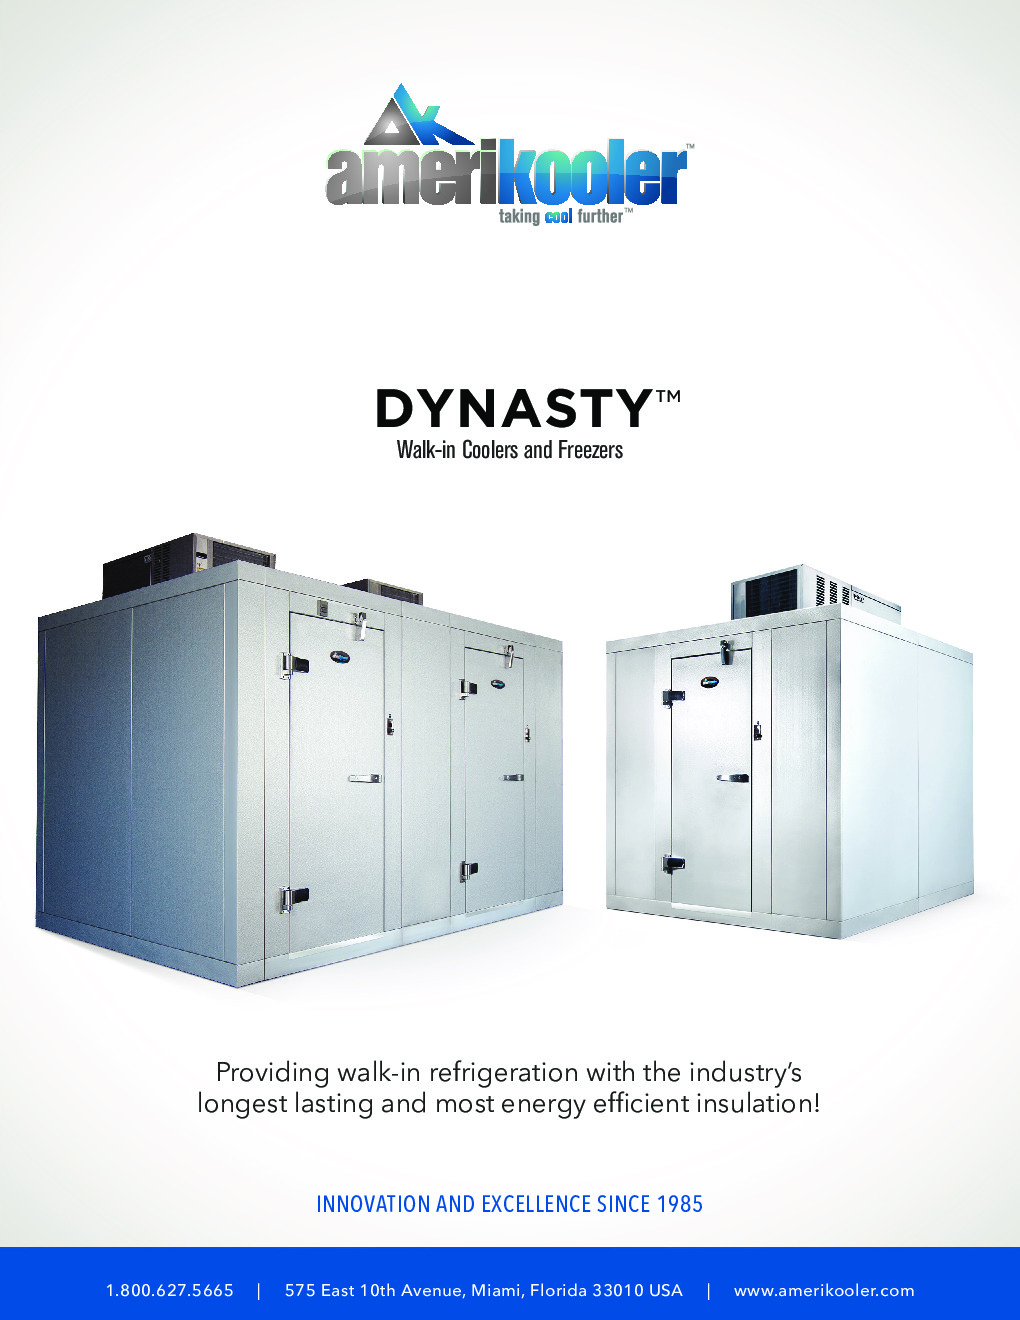 AmeriKooler DW071277F-6/6-SC 7' X 12' Walk-In Cooler, 6' L Cooler with Floor and 6' L Freezer, Self Contained